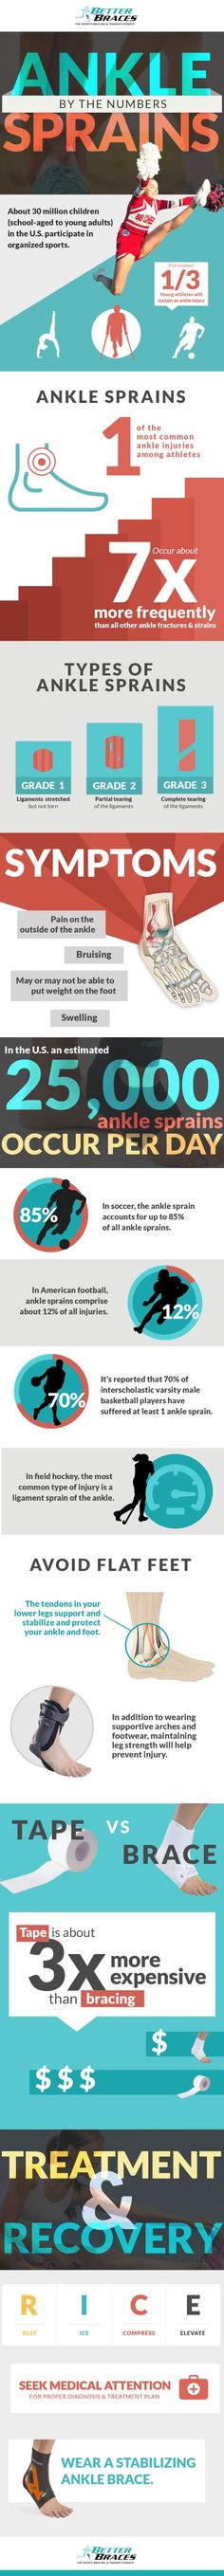 ankle sprains occur per day. From symptoms and ankle sprain types to treatment and prevention, use this ankle sprain infographic as a guide to take the necessary steps to recovery properly and avoid re-injury. Health And Wellness, Health Fitness, Sprained Ankle, Athletic Training, Sports Medicine, Injury Prevention, Physical Therapy, Get In Shape, Basketball